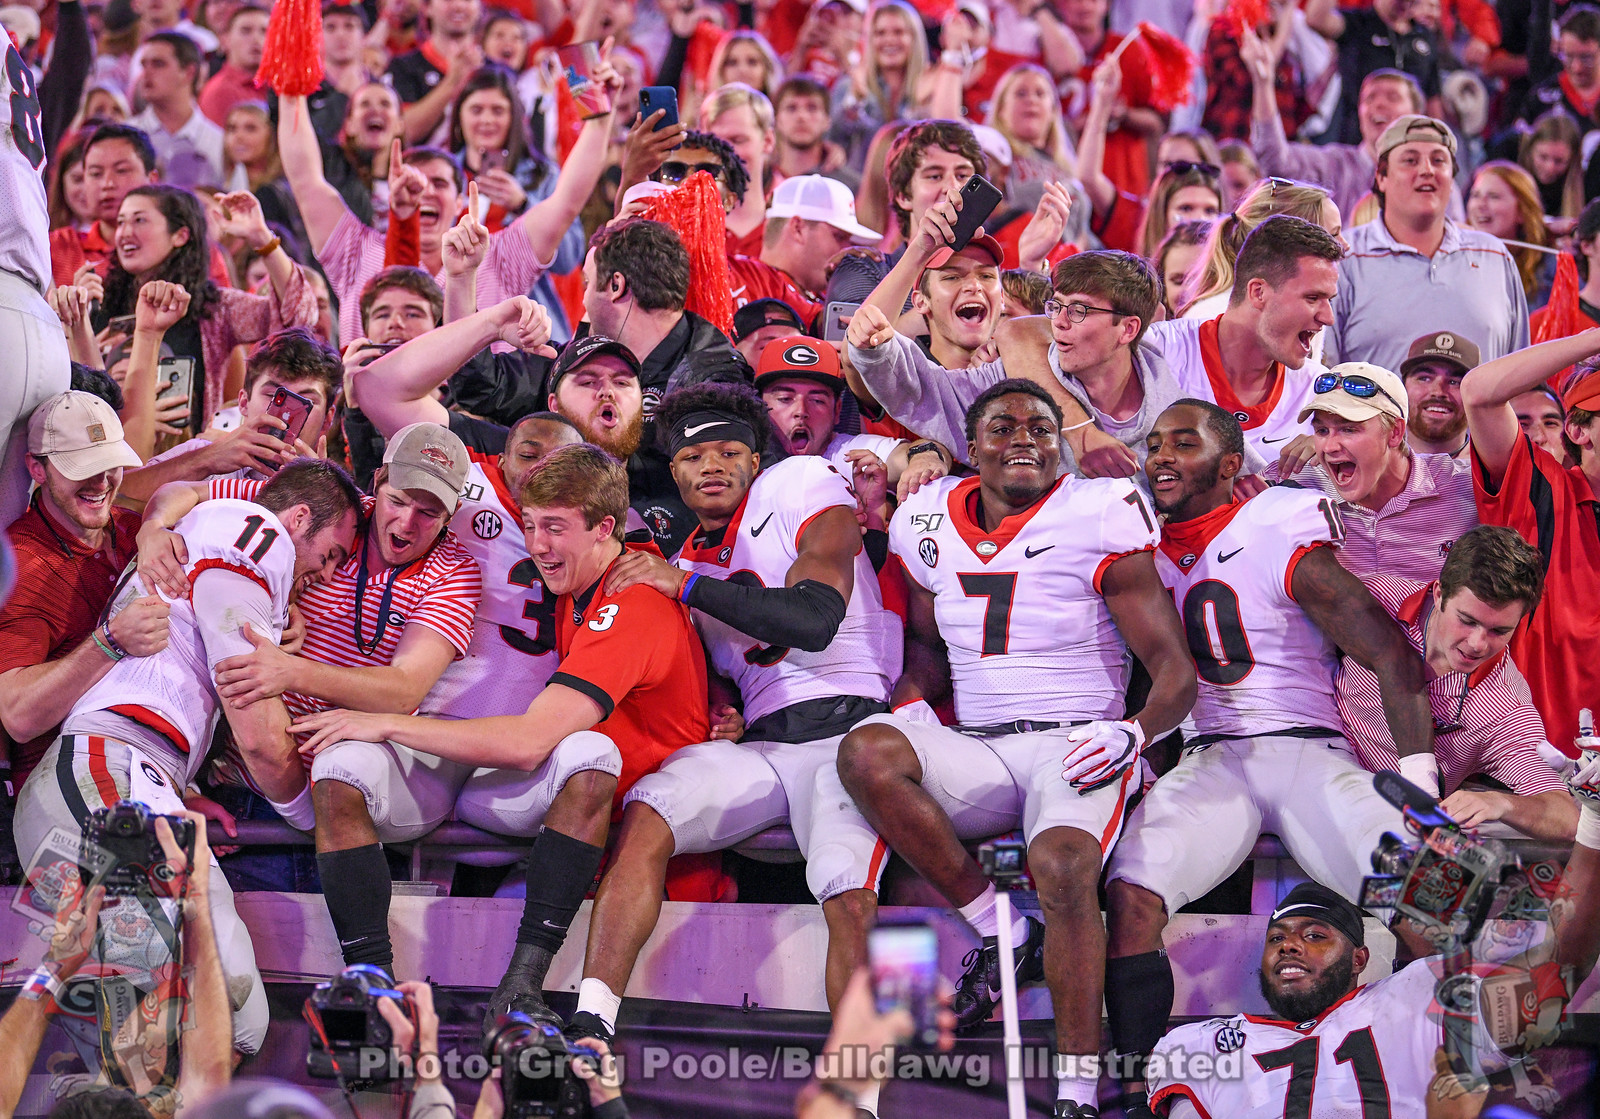 (L-R) Jake Fromm (11), Zamir White (3), Tyson Campbell (3), Tyrique Stevenson (7), Kearis Jackson (10), along with a number of their teammates celebrate with Dawg fans after Georgia defeats Florida 24-7, Saturday, November 2, 2019